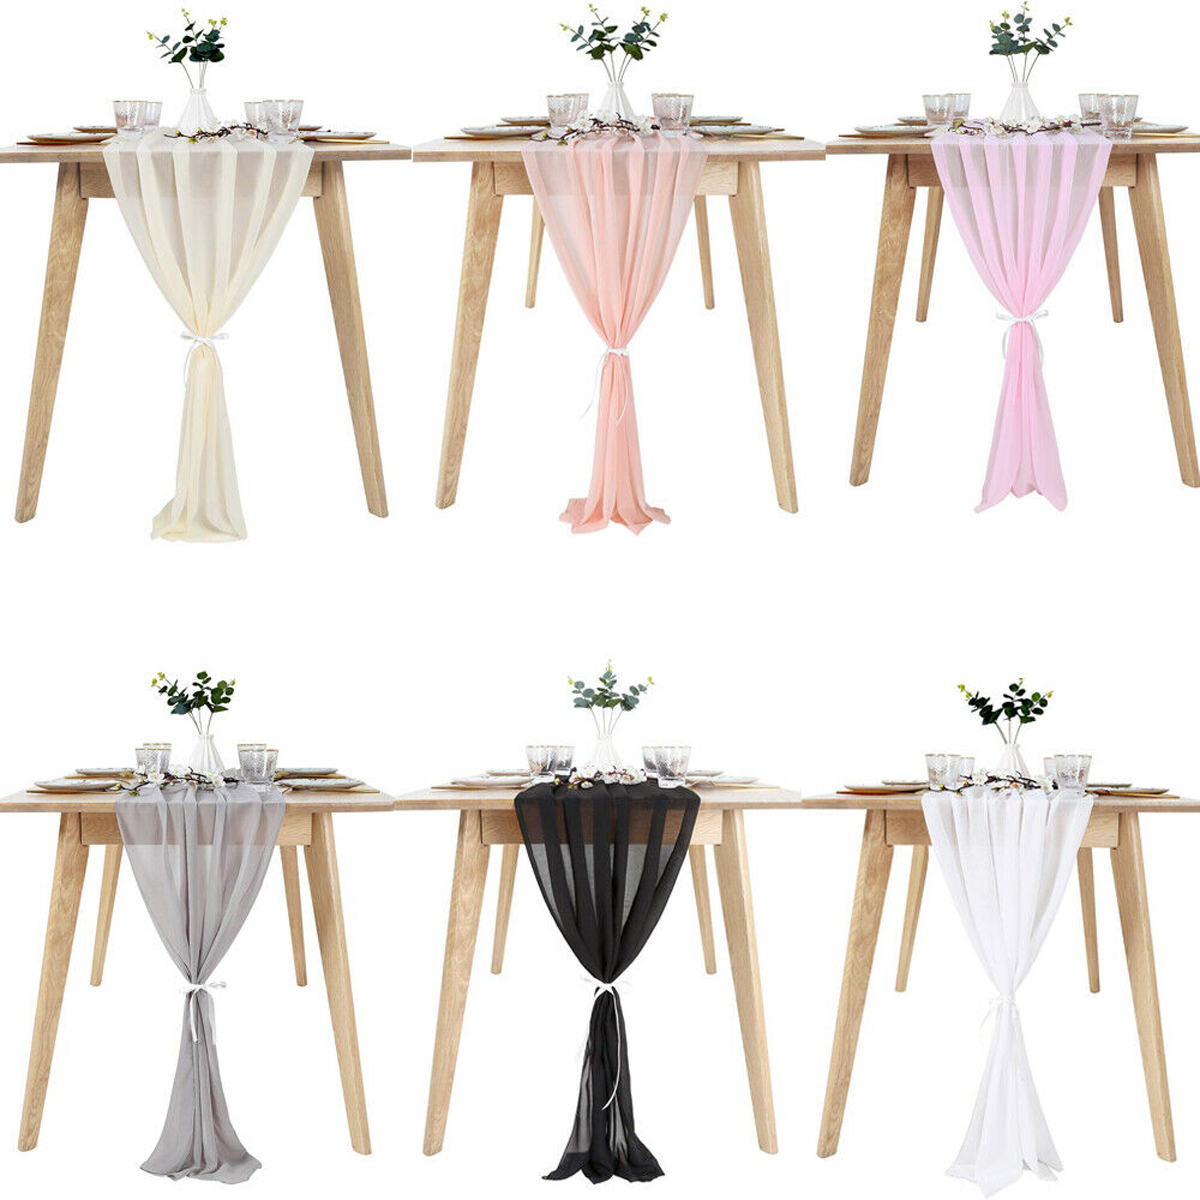 New Flowy Chiffon Table Runner Kitchen Living Room Party Wedding Home Decor